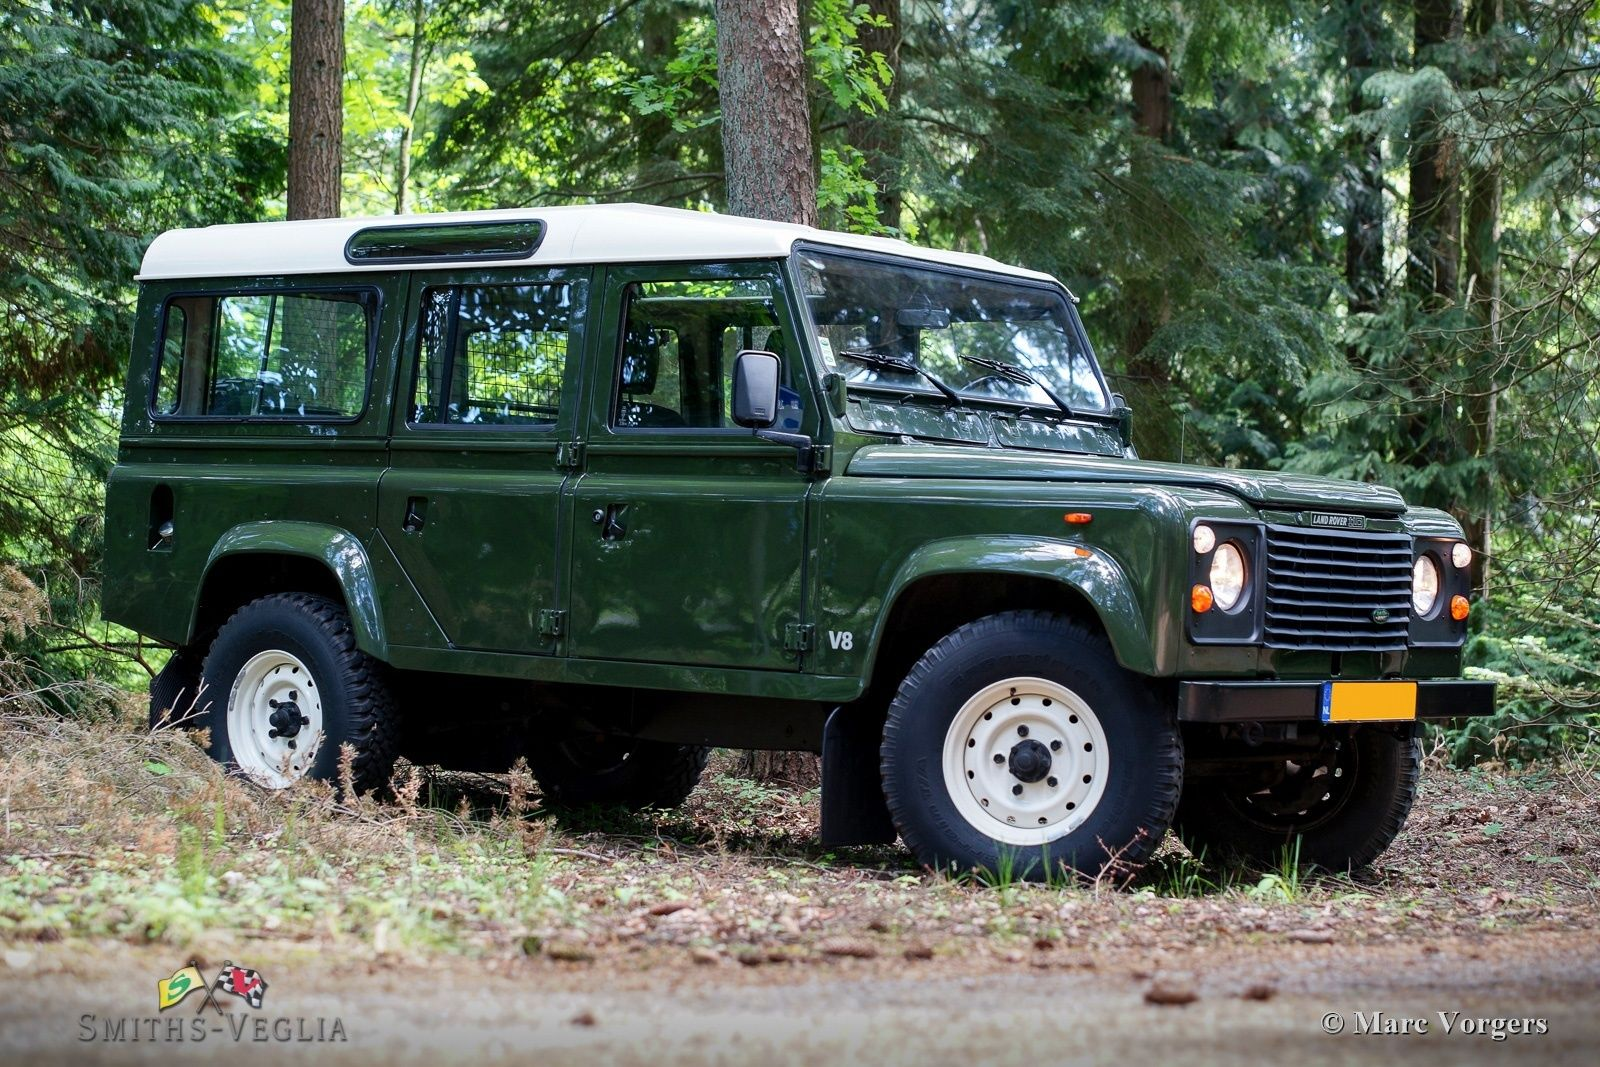 1985 Land Rover Defender 110 V8 Land Rover Land Rover Defender Land Rover Defender 110